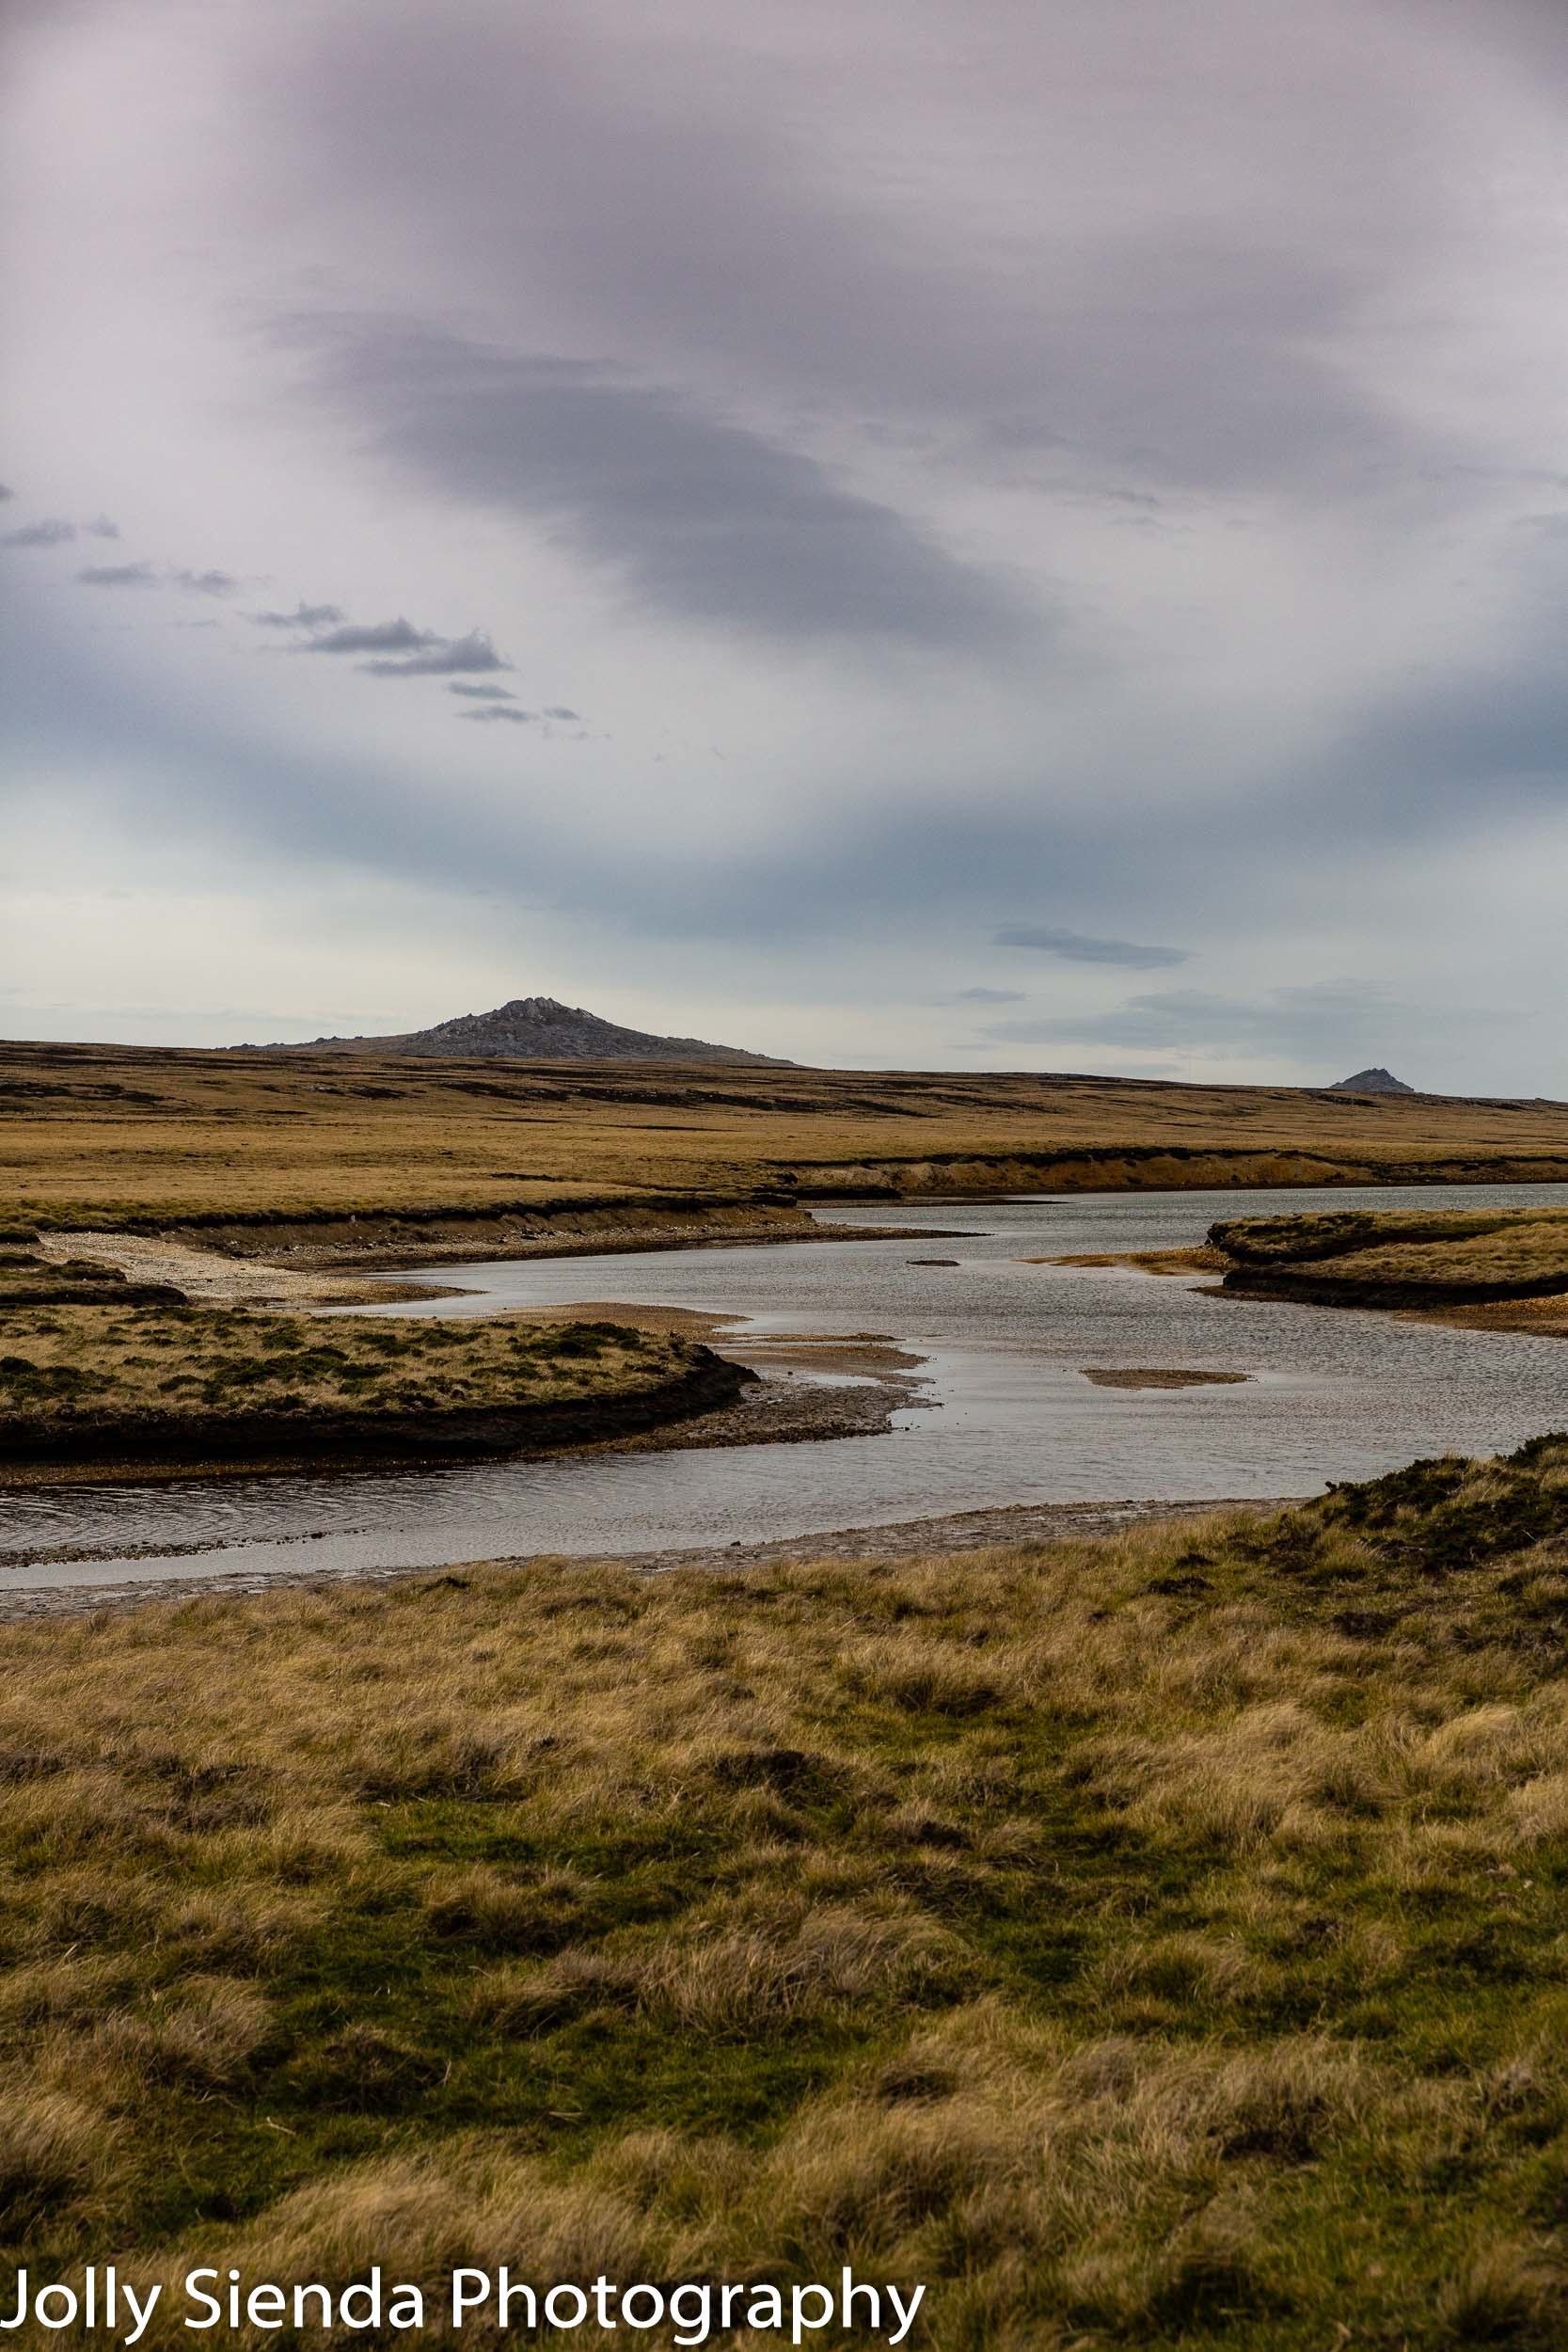 Falkland Island river and mountain landscape